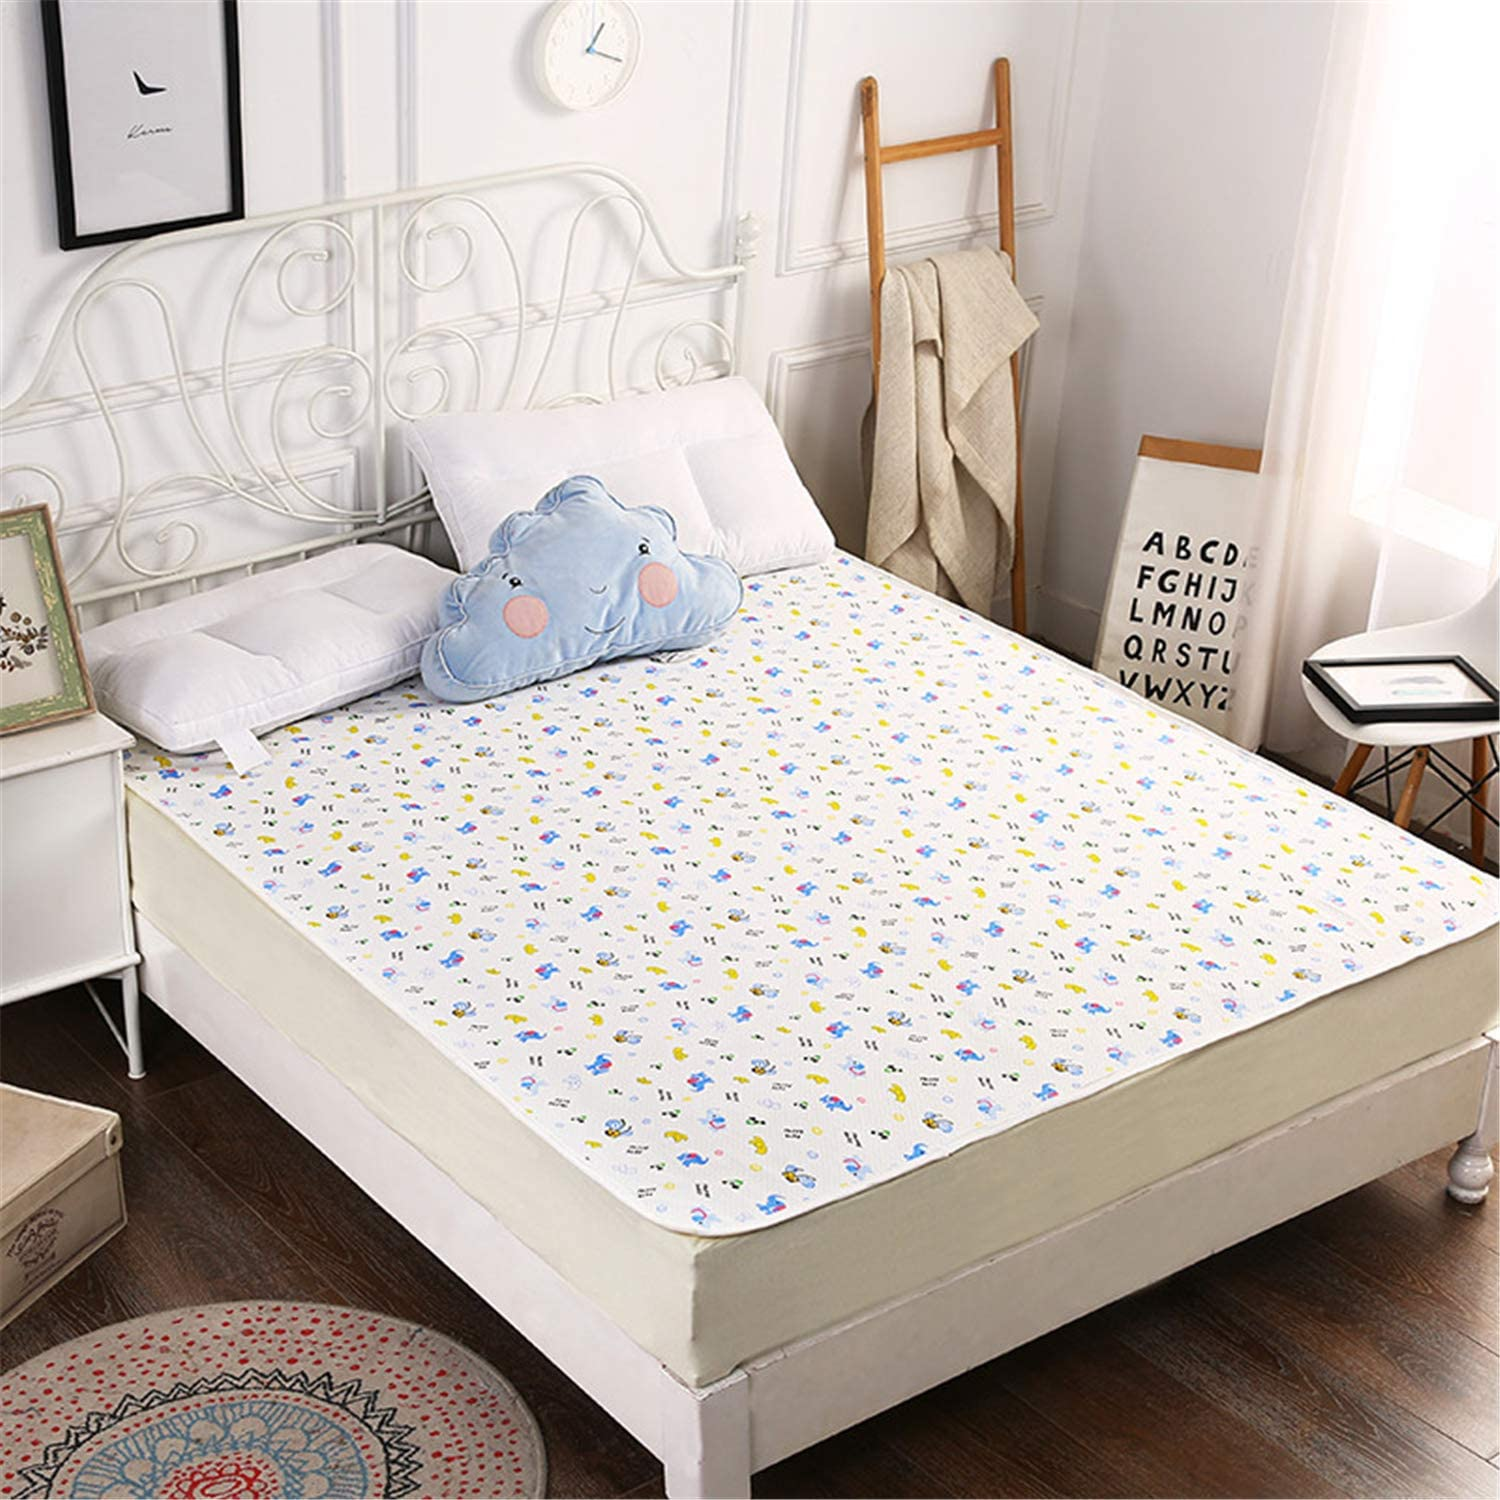 Machine Washable Anti-Allergenic and Breathable Easy to Use Ready Steady Bed Quilted Replacement Cot Bed Mattress Cover 140cm x 70cm x 10cm Protect and Prolong